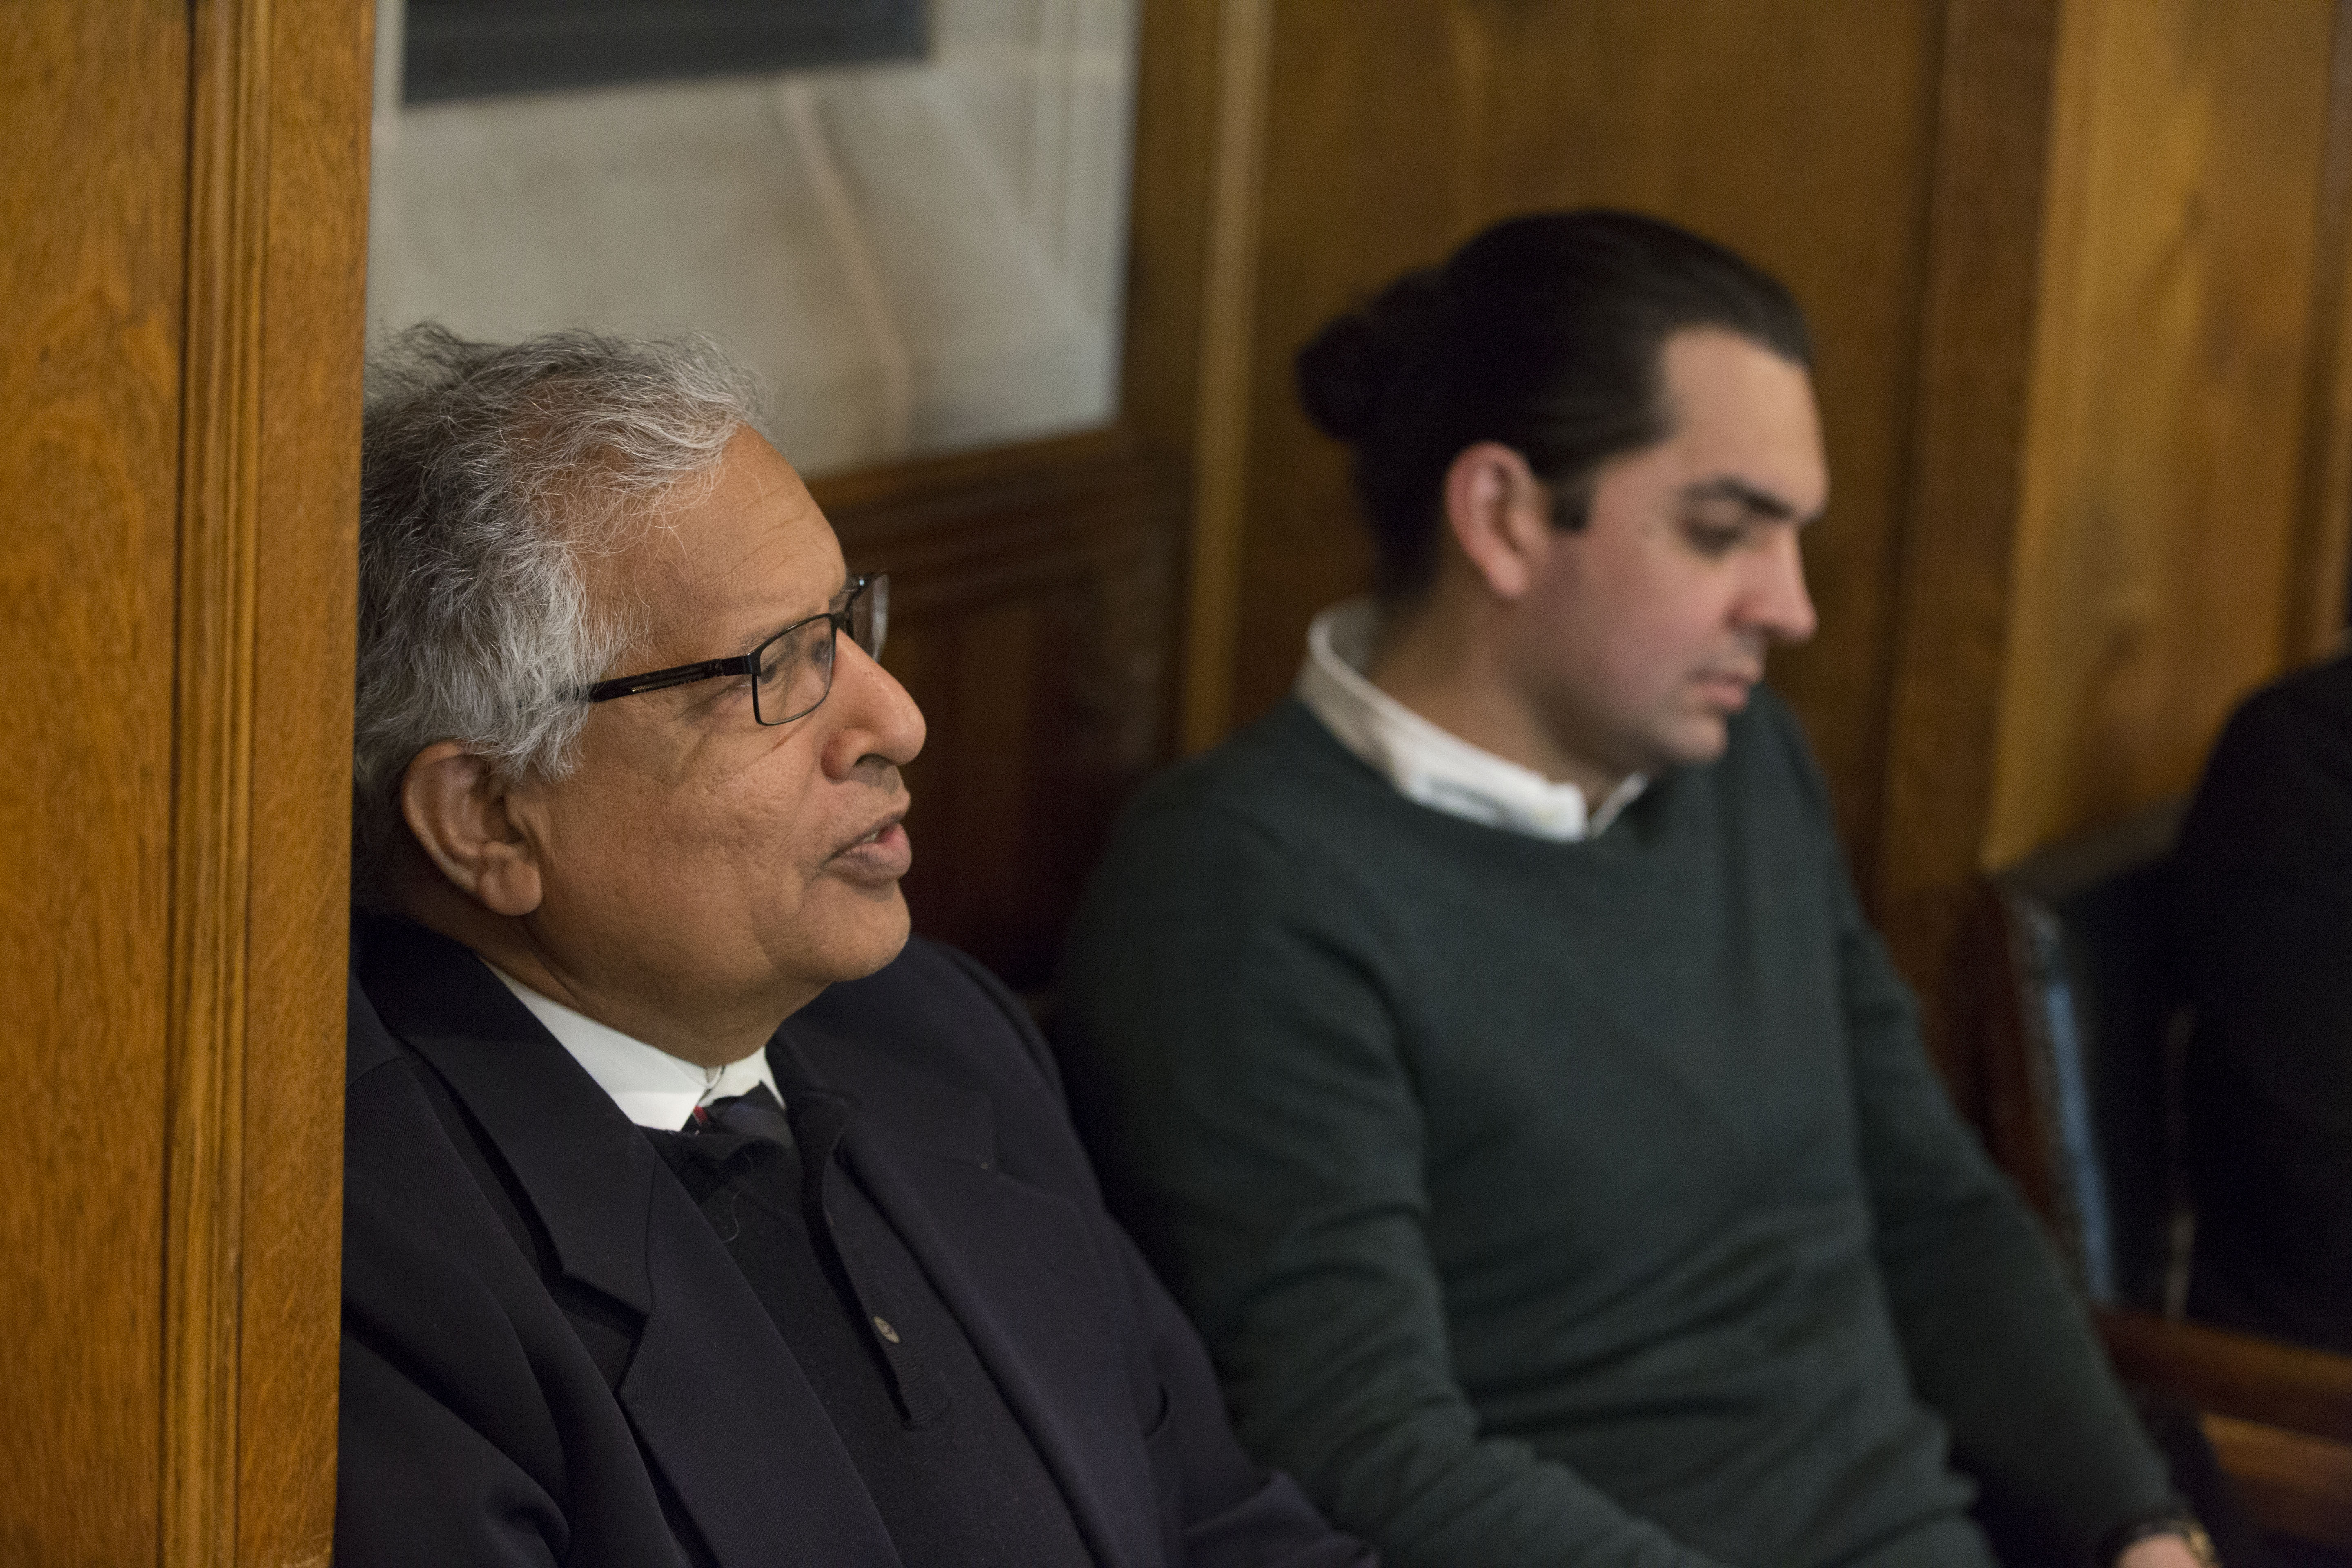 Yale SOM Prof. Shyam Sunder and Yale Epidemiology Research Scientist Jorge A. Alfaro-Murillo